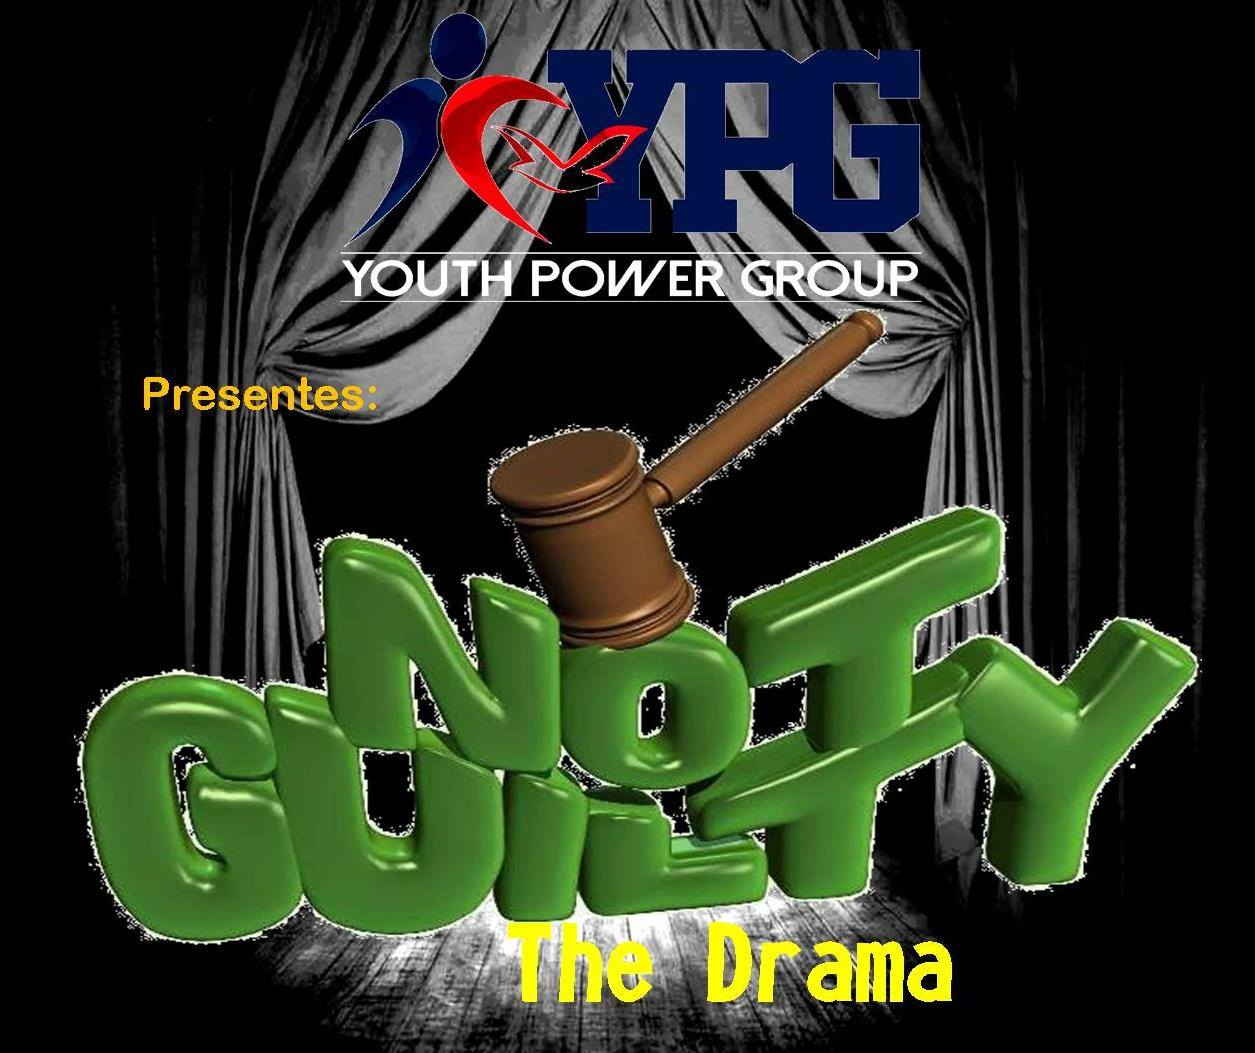 what to do saint lucia Not Guilty! Youth theatre last drama of the year